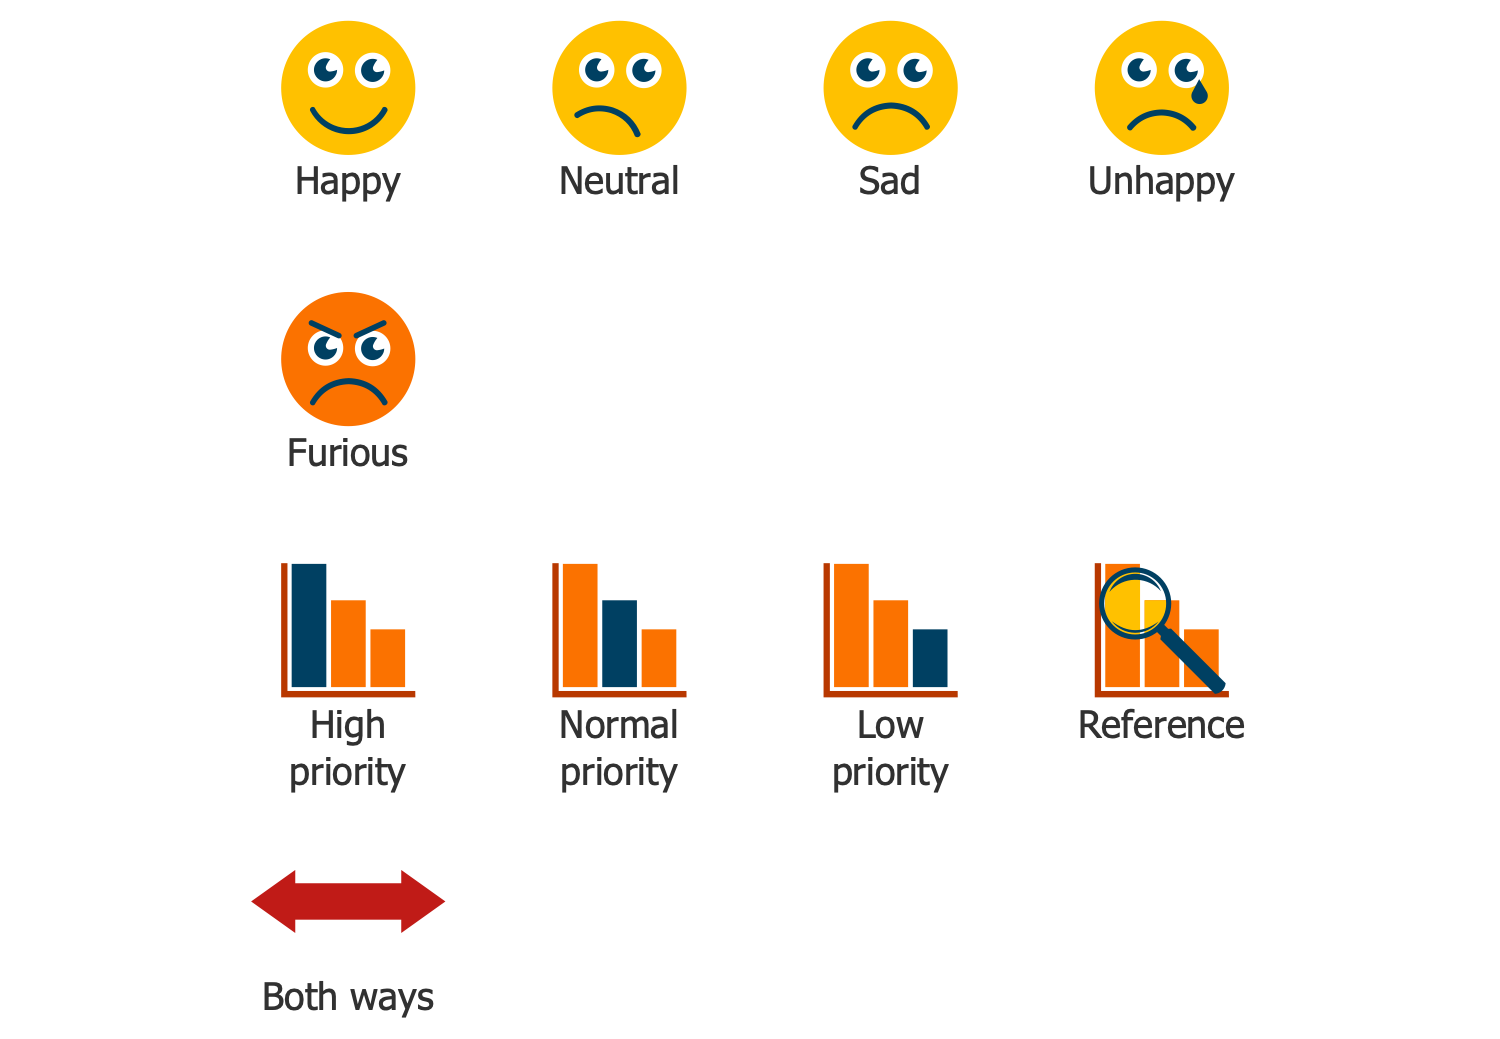 Design Elements — Emoji and Priorities